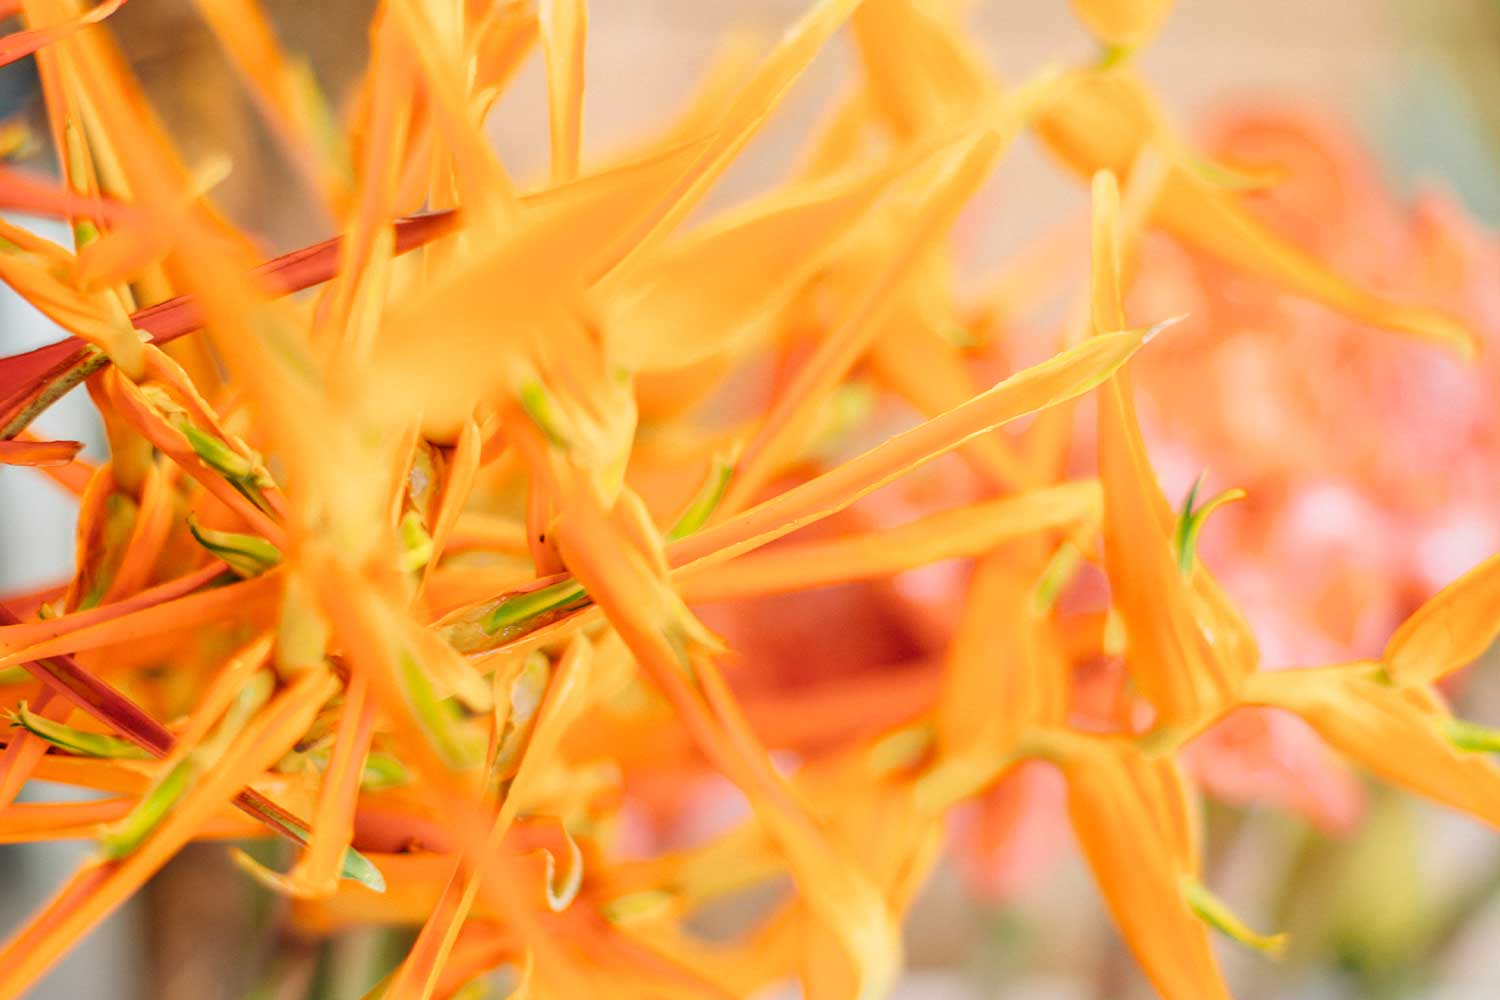 Close up of orange flowers with long, thin petals